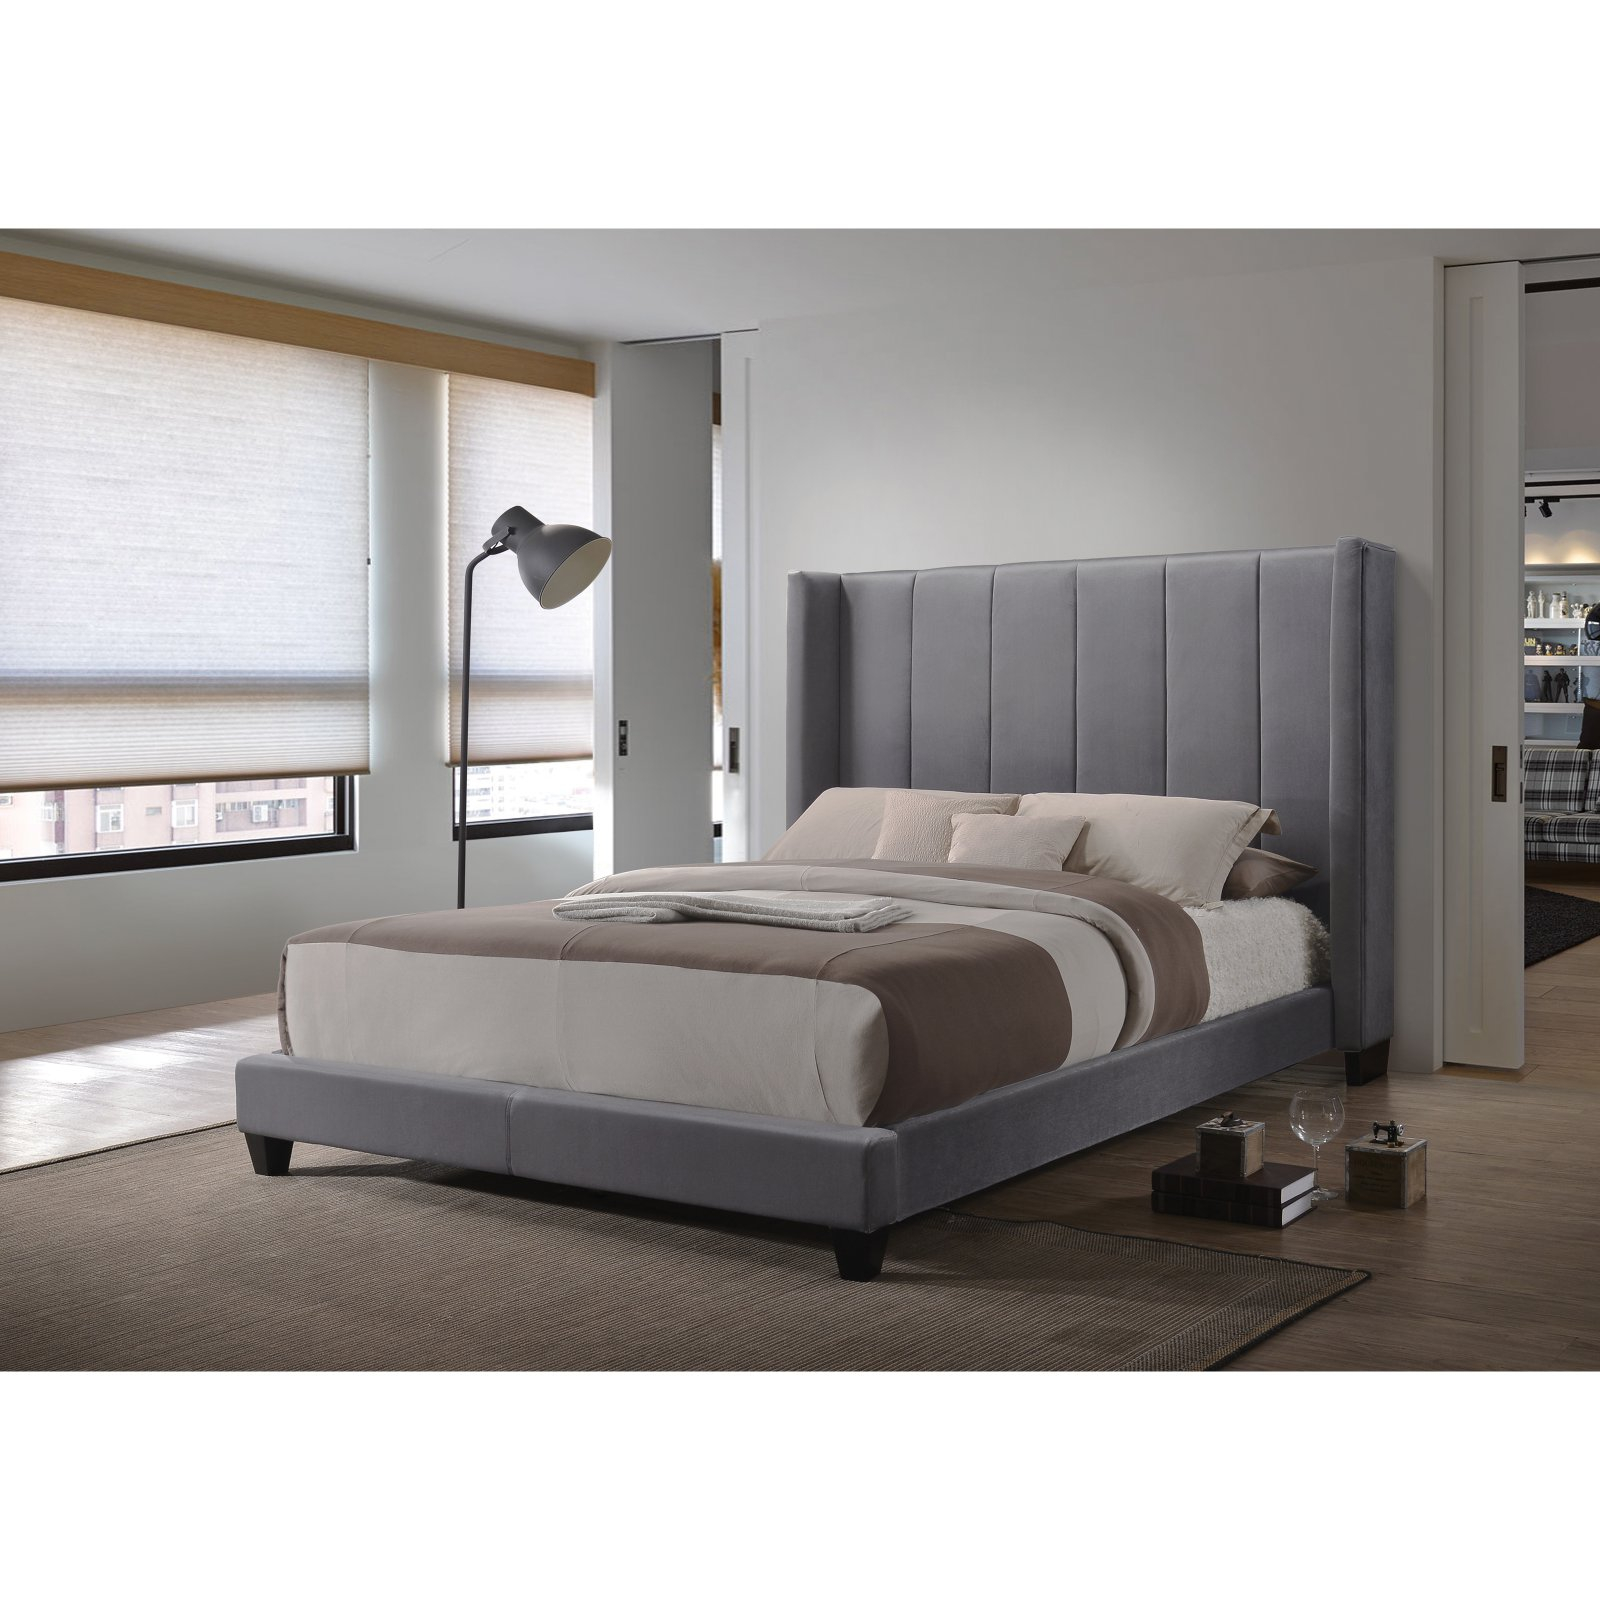 Coaster Furniture Hudson Upholstered Bed